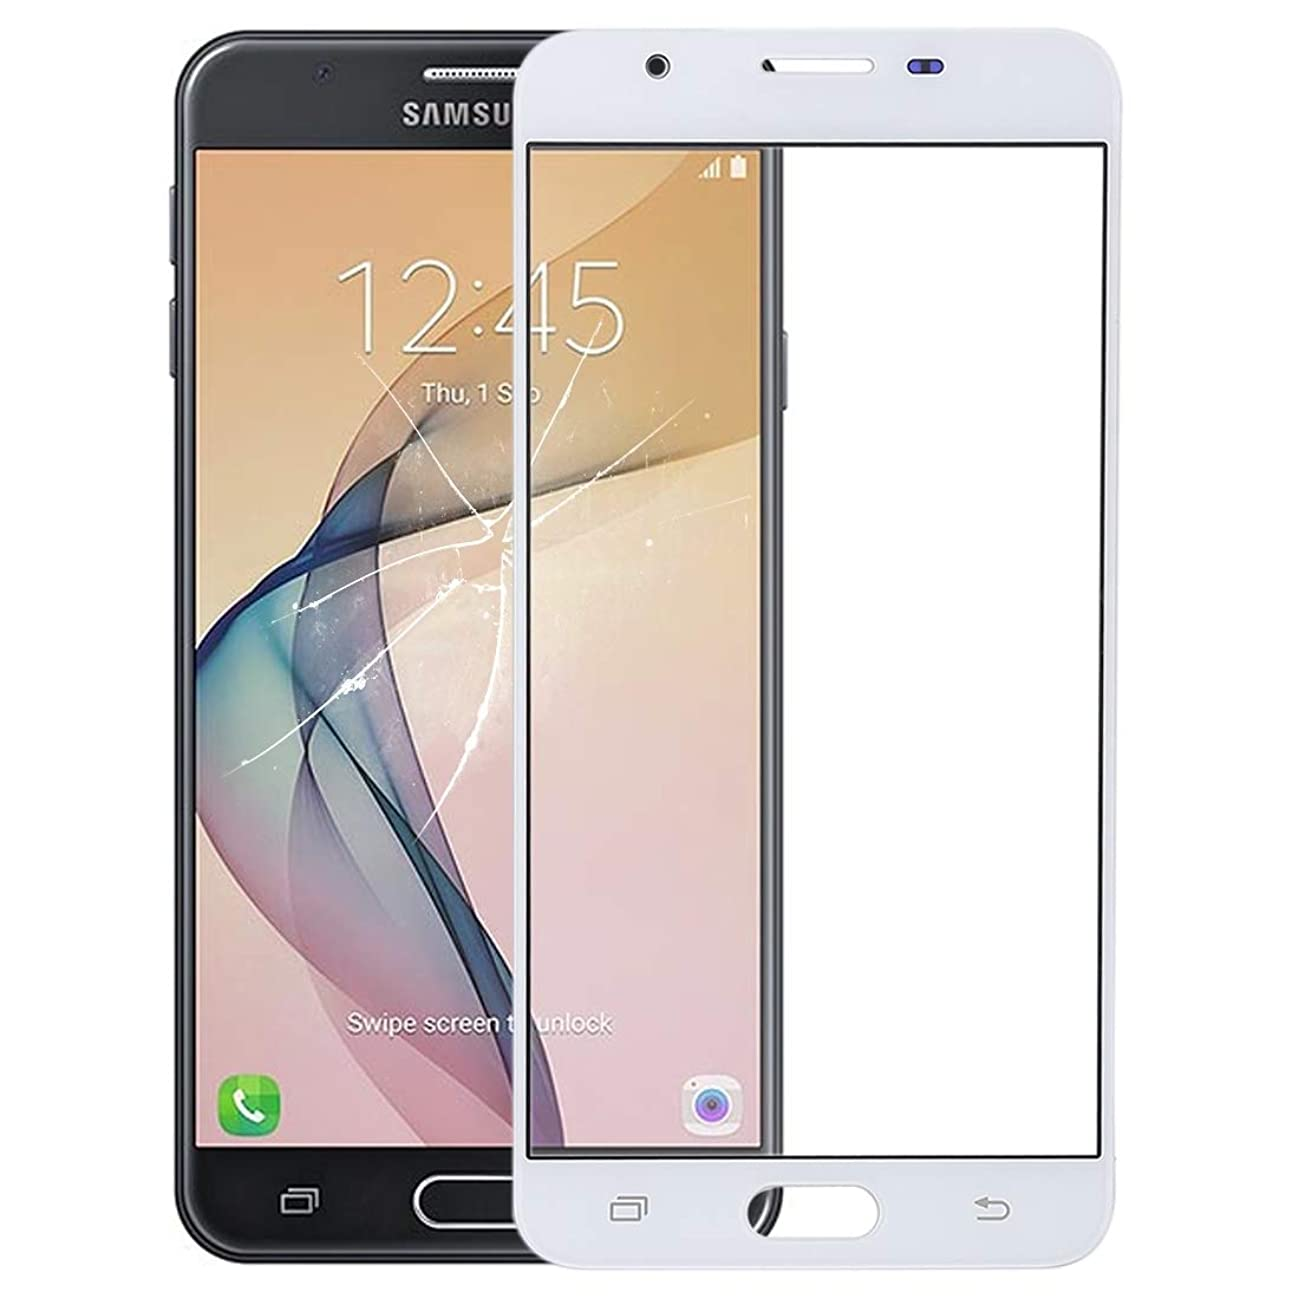 DELANSHI for Galaxy J7 Prime, On7 (2016), G610F, G610F/DS, G610F/DD, G610M, G610M/DS, G610Y/DS Front Screen Outer Glass Lens (Color : White)